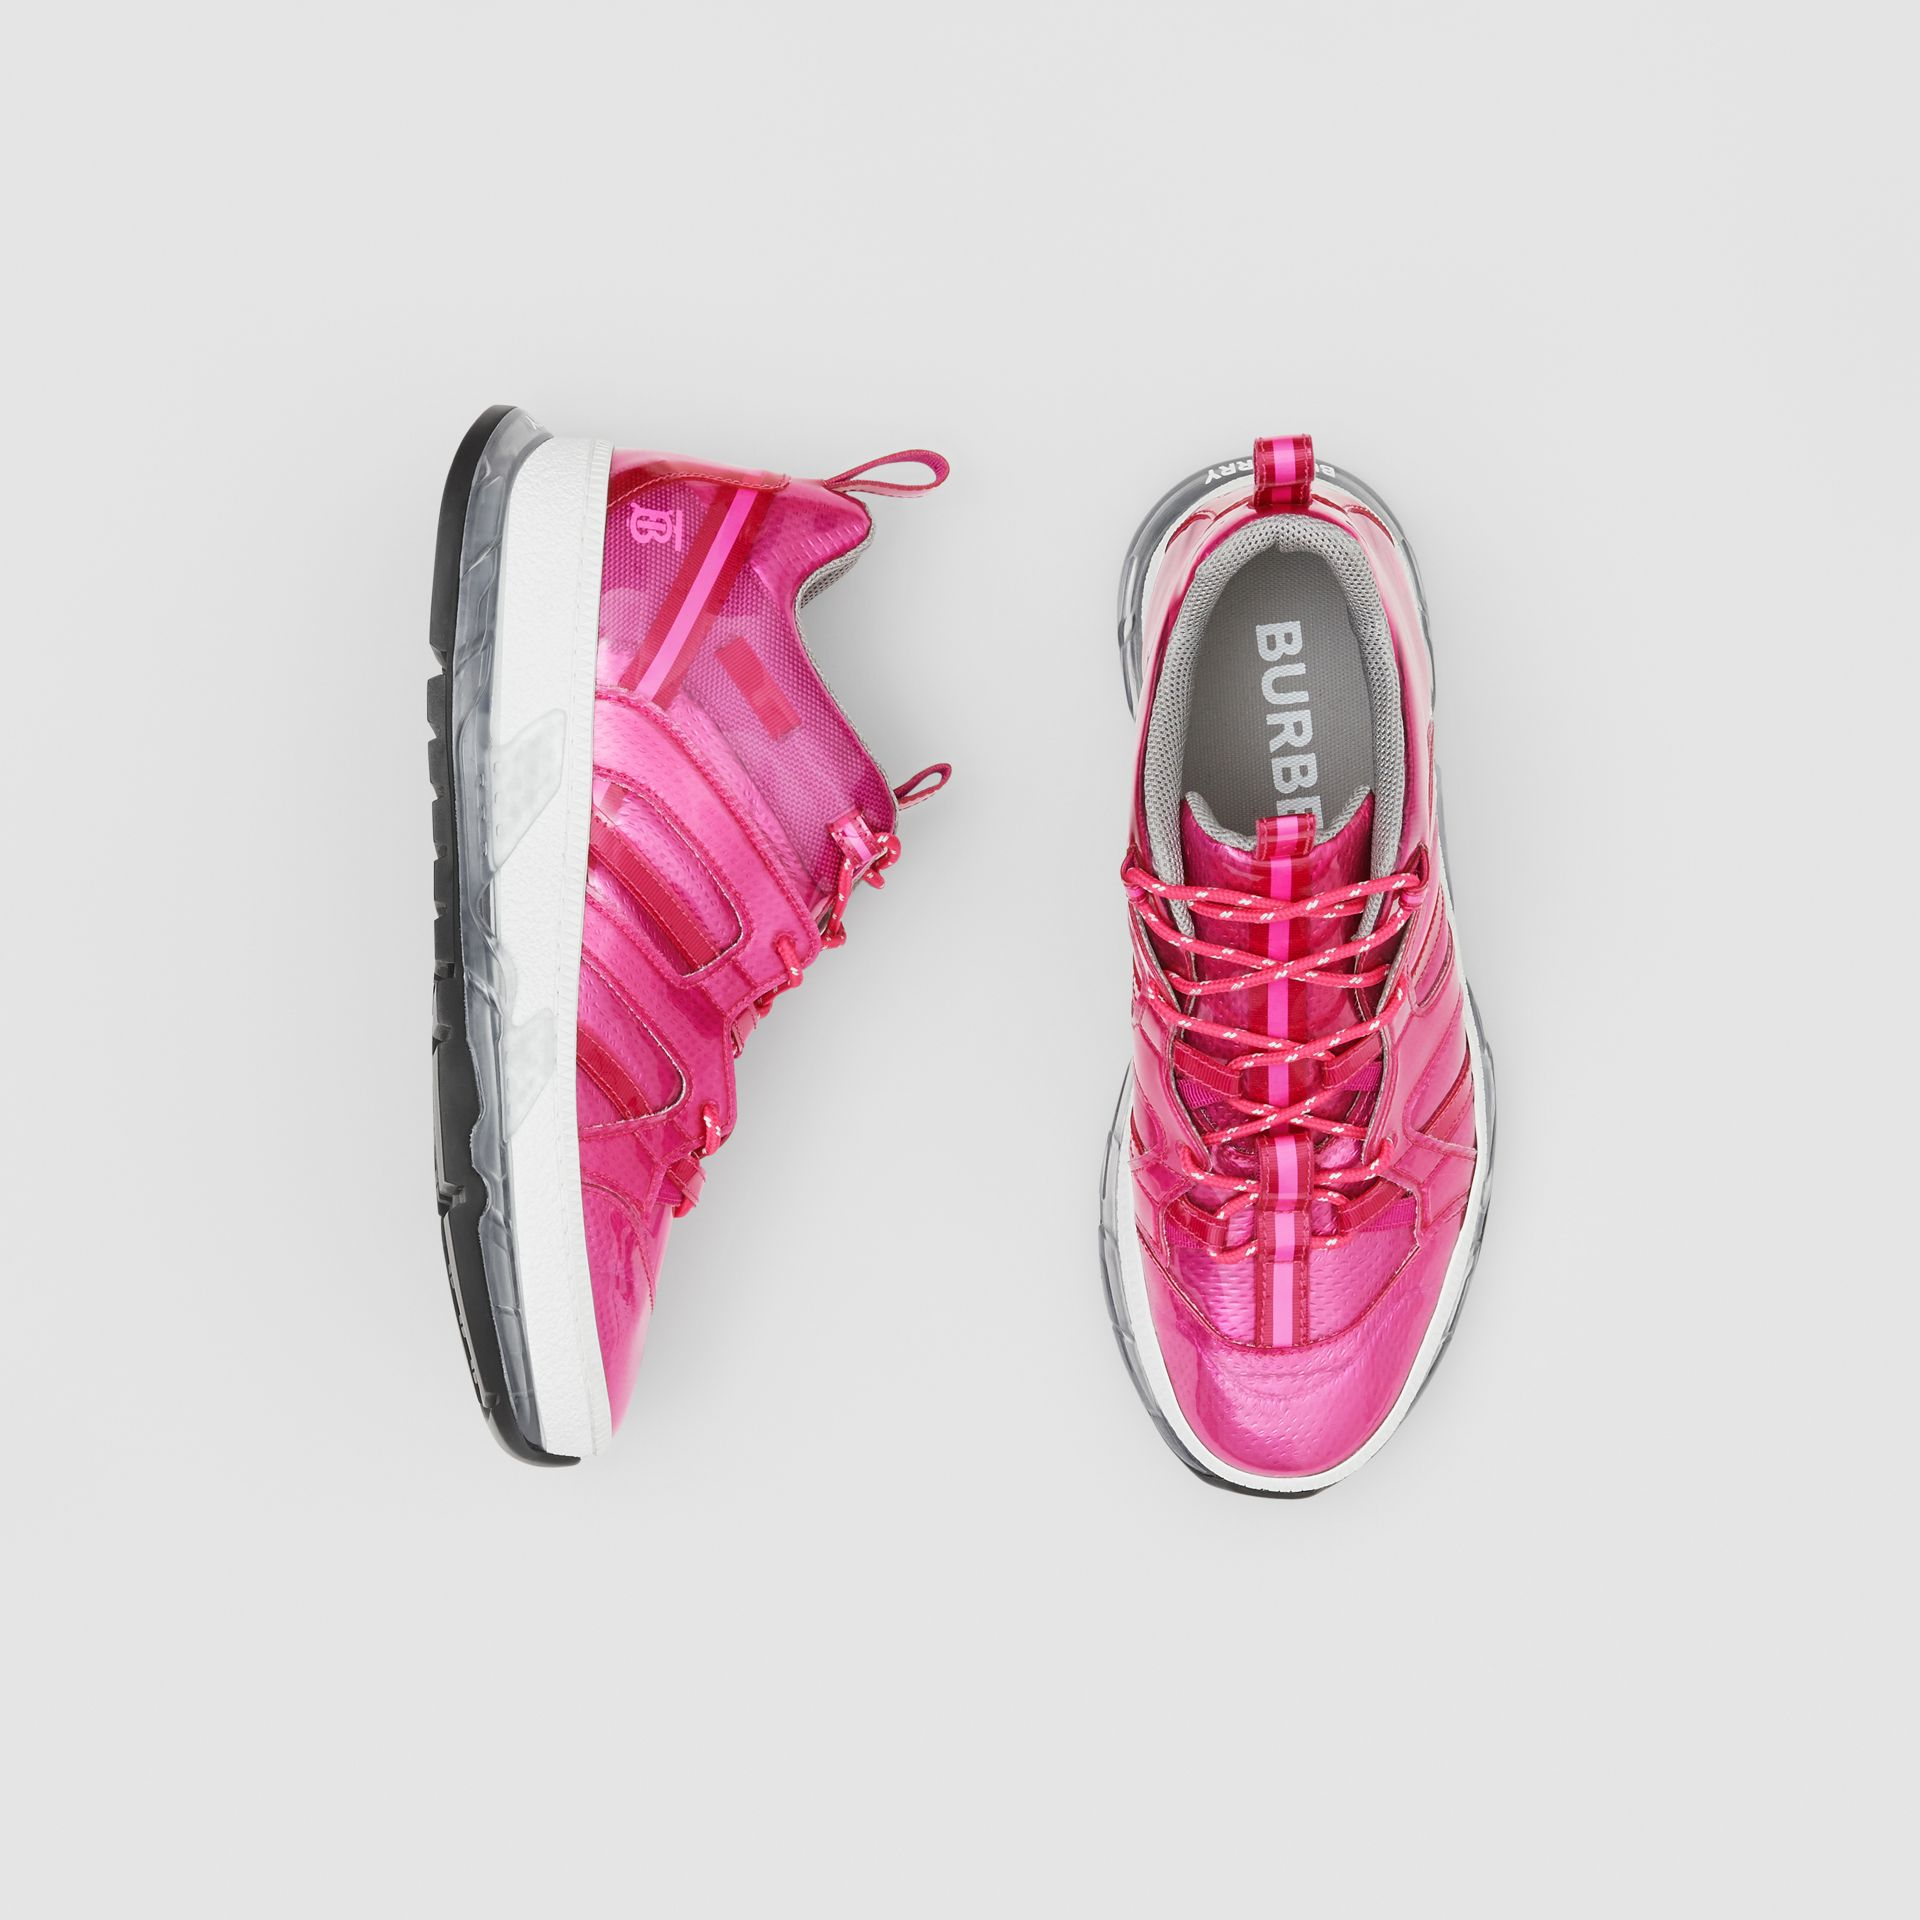 Sneakers Union en vinyle et nylon (Fuchsia) - Homme | Burberry - photo de la galerie 0